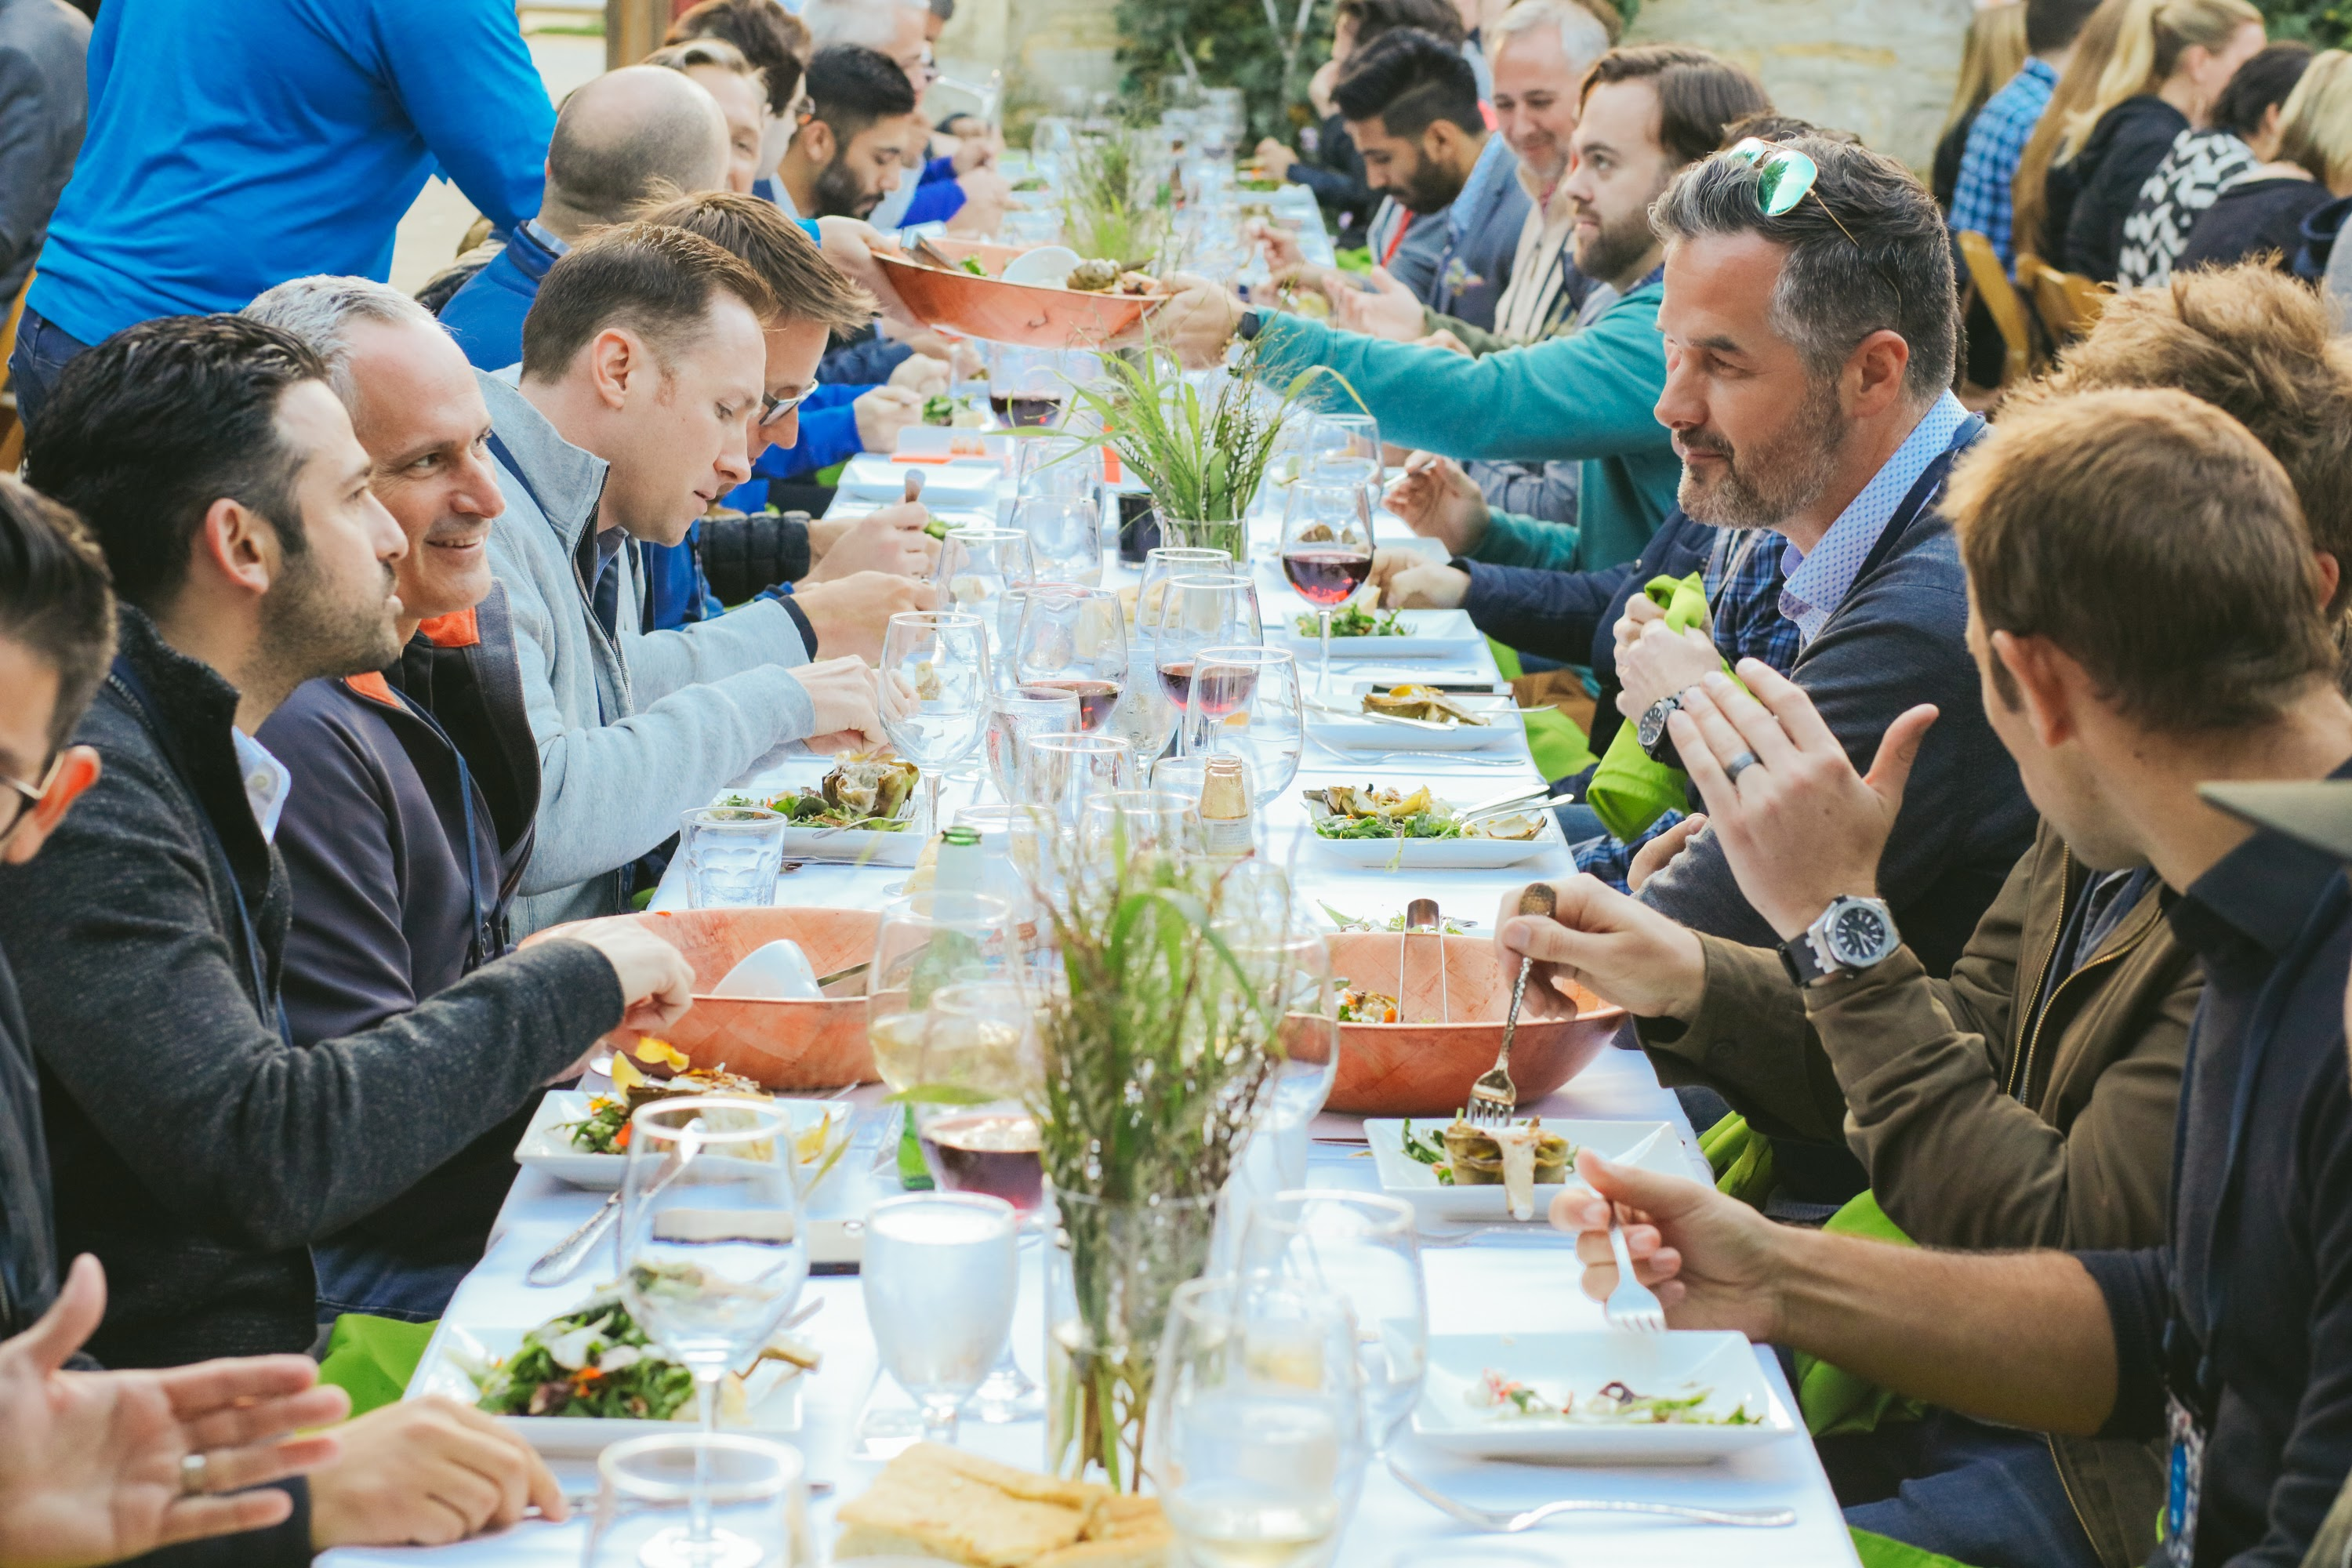 The Benefits of Hosting Catalyst Dinners of All Sizes